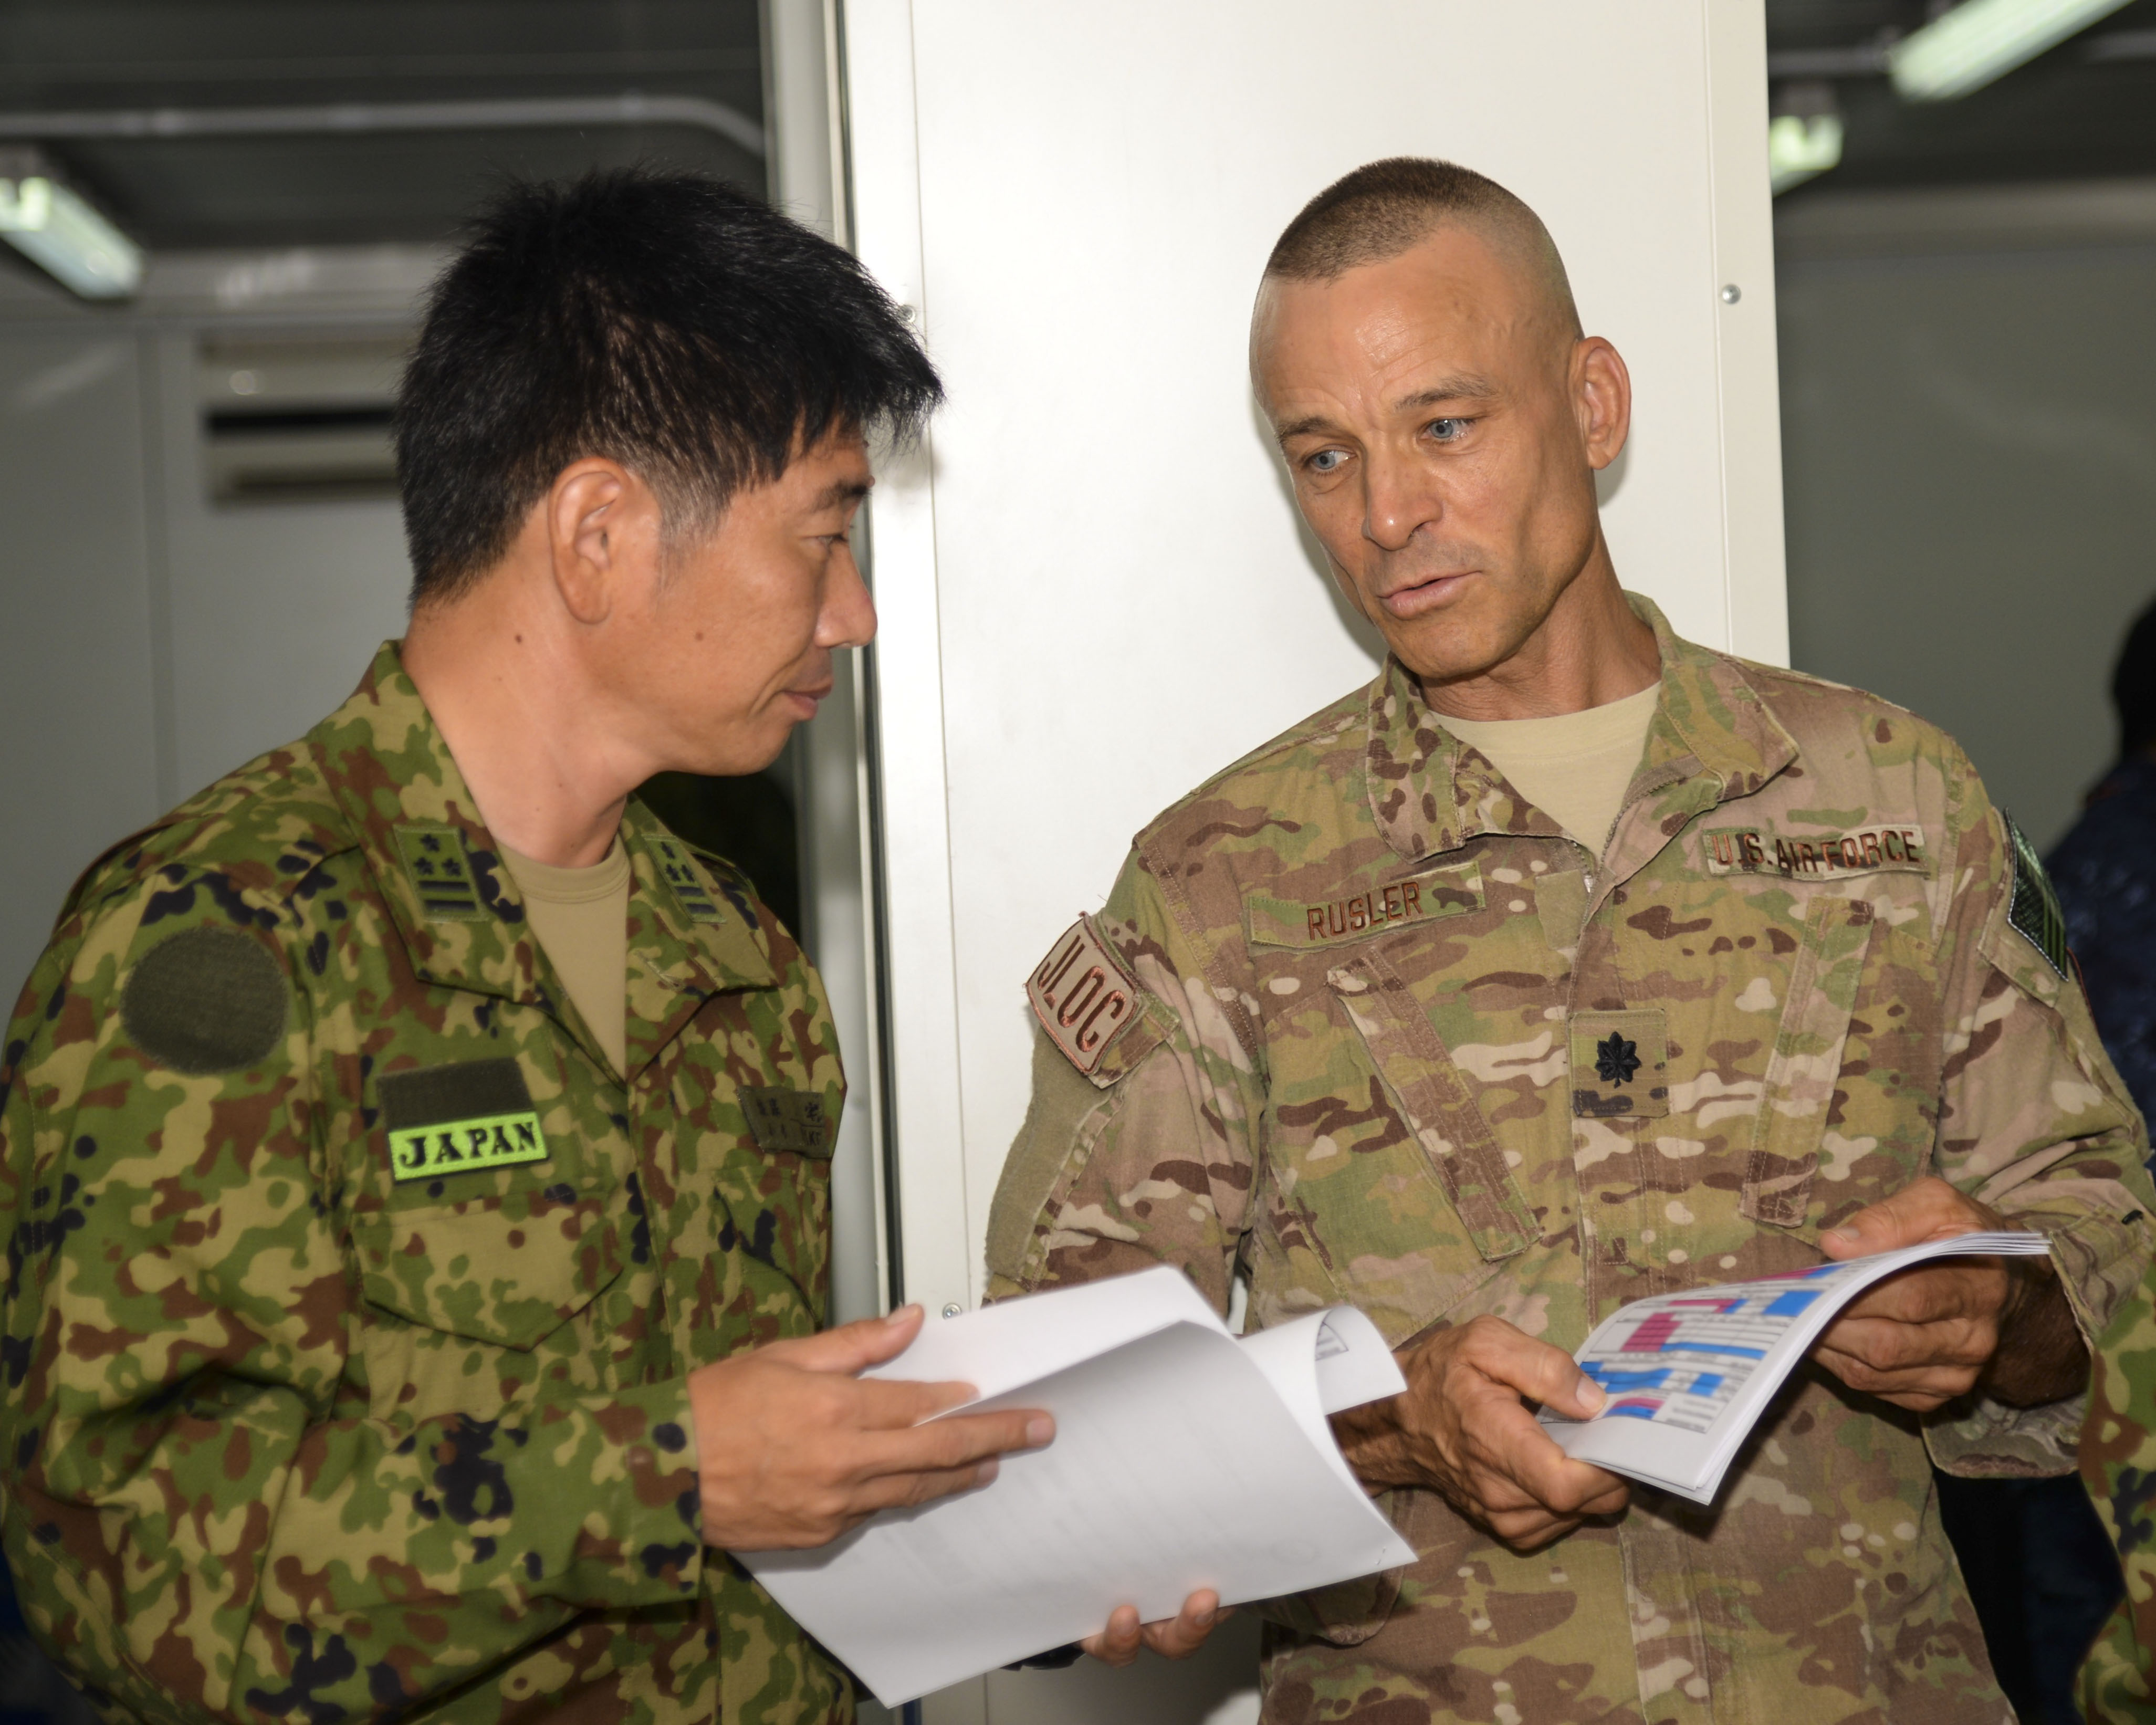 U.S. Air Force Lt. Col. Brian Rusler, Combined Joint Task Force-Horn of Africa joint logistics operations center director, speaks with Japanese service members during an exercise to discuss how they can support each other in an event involving the evacuation of Americans or Japanese from a hostile location in Africa, Aug. 28, 2016 at the Japanese base in Djibouti. During the exercise, both forces discussed route planning, logistics, equipment maintenance, how military personnel would be involved, medical support and use of air and ground transportation for evacuees. The plans also examined their strengths and weaknesses and reassessed the movement of evacuees to safety. (U.S. Air Force photo by Staff Sgt. Benjamin Raughton/Released)